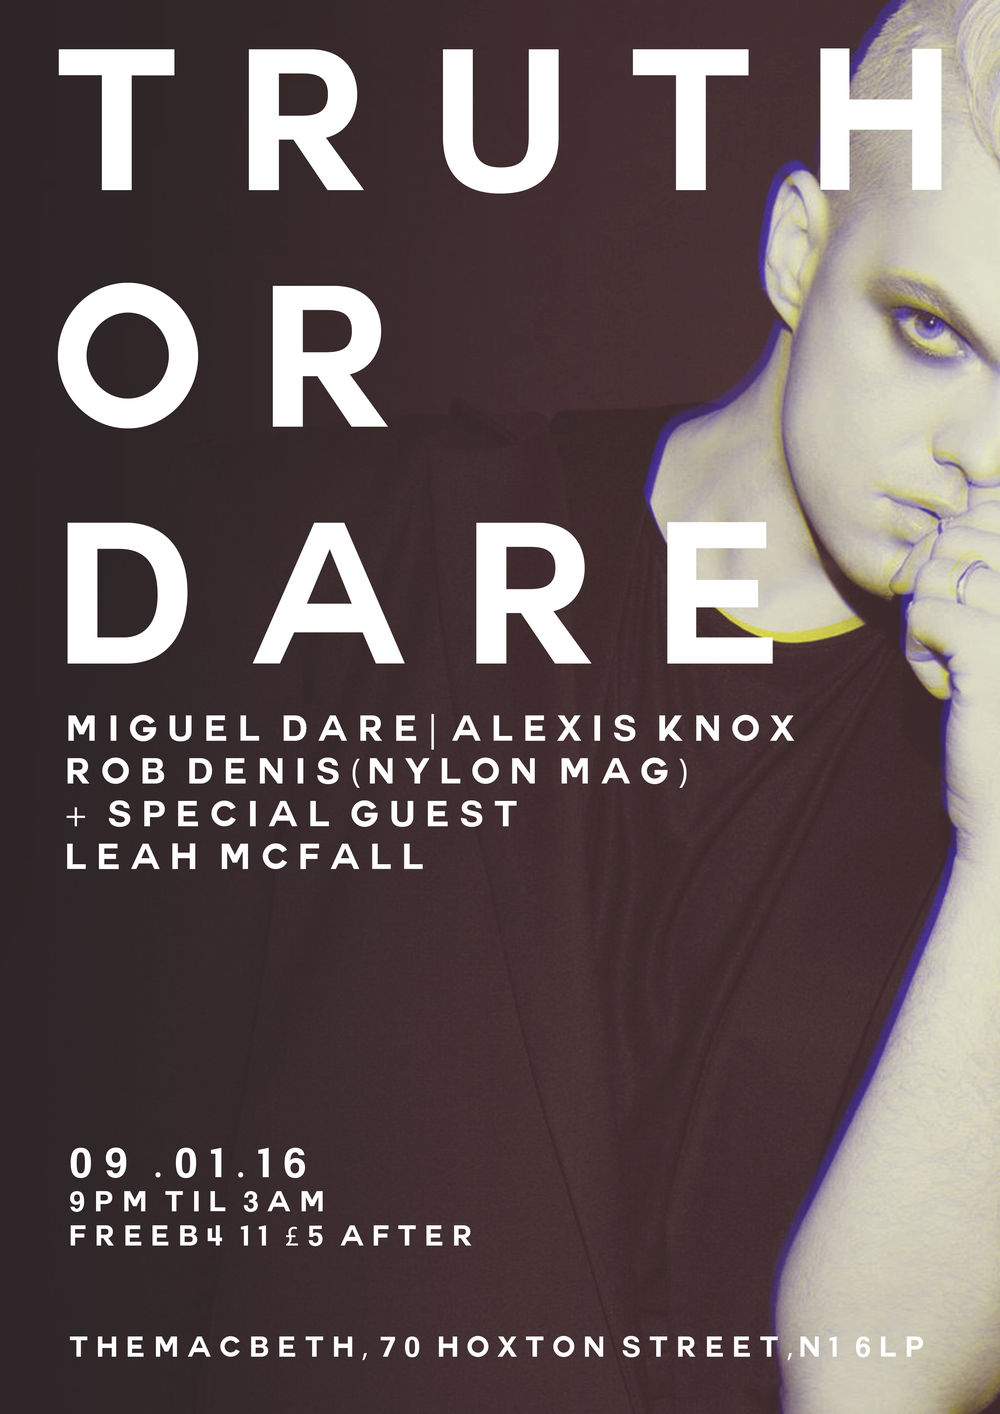 Miguel Dare presents TRUTH OR DARE- his first official London club nite. Expect no hold-barred trap RNB & hip-hop. WEAR WHAT YOU DARE DRESS TO SWEAT!